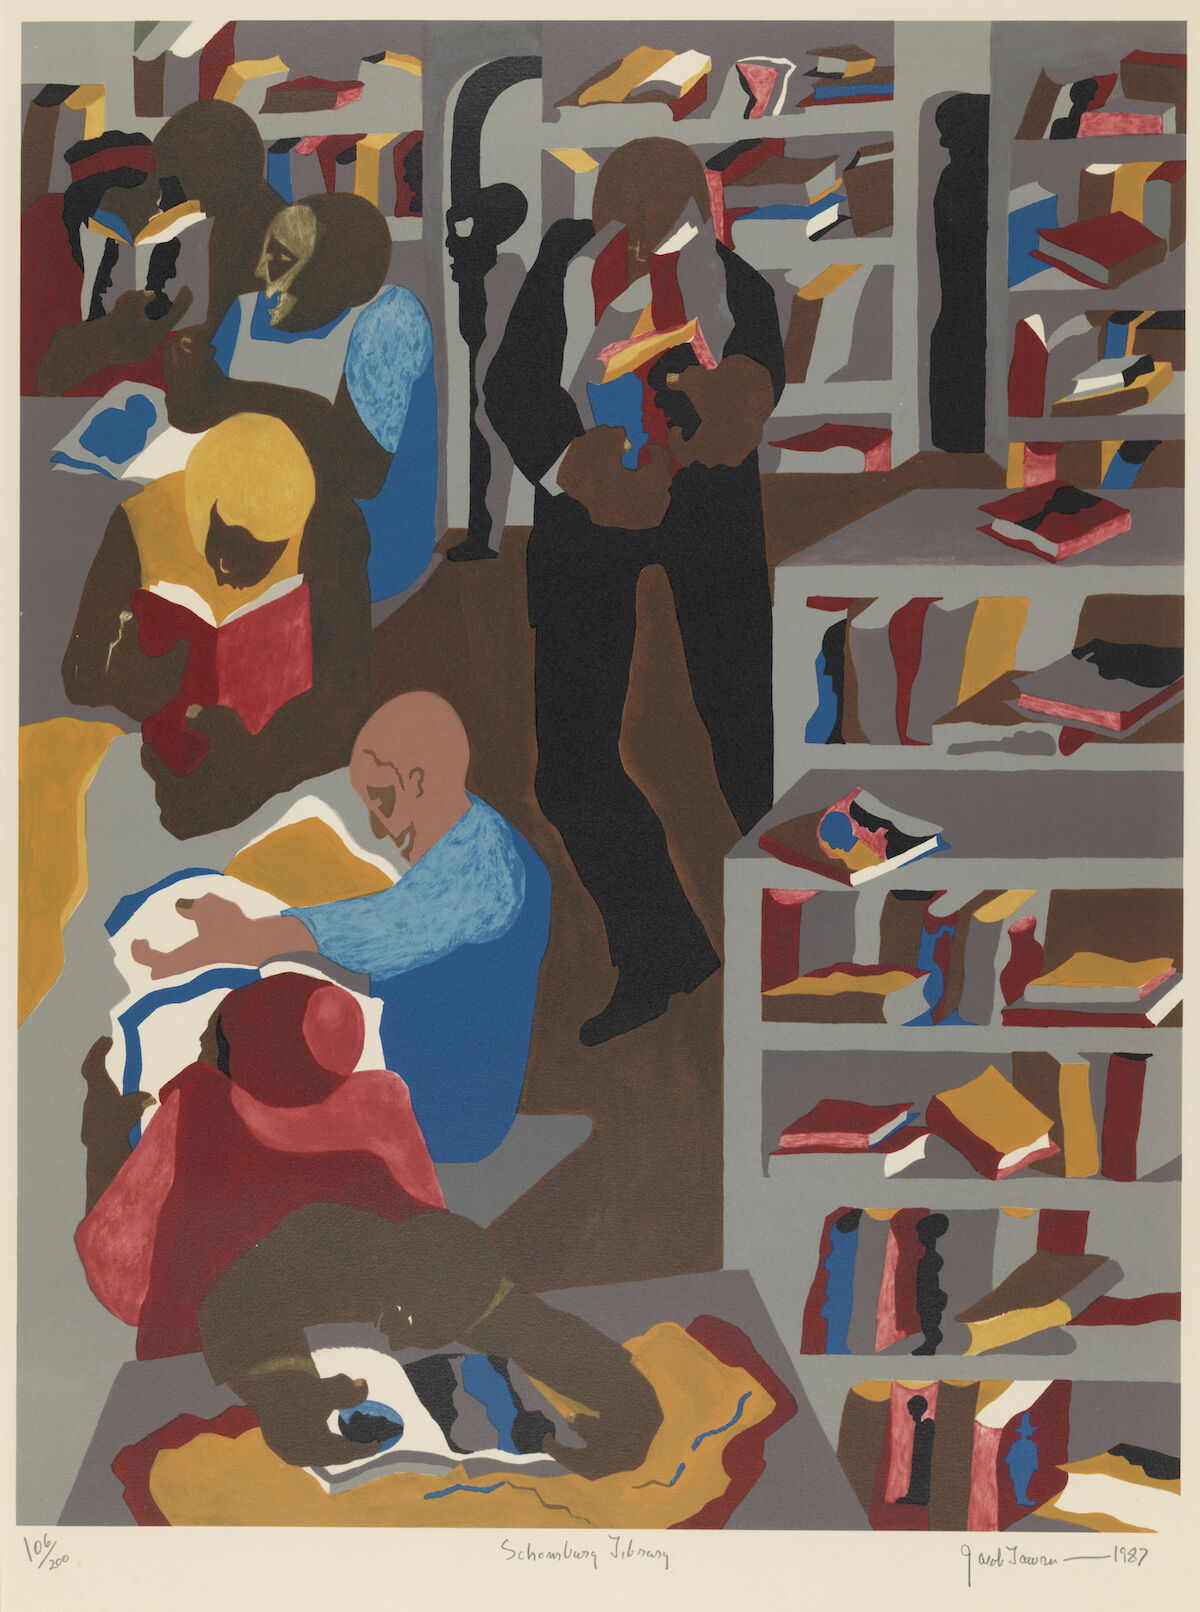 Jacob Lawrence, Schomburg Library, 1987, silkscreen. Courtesy the Pennsylvania Academy of Fine Arts.